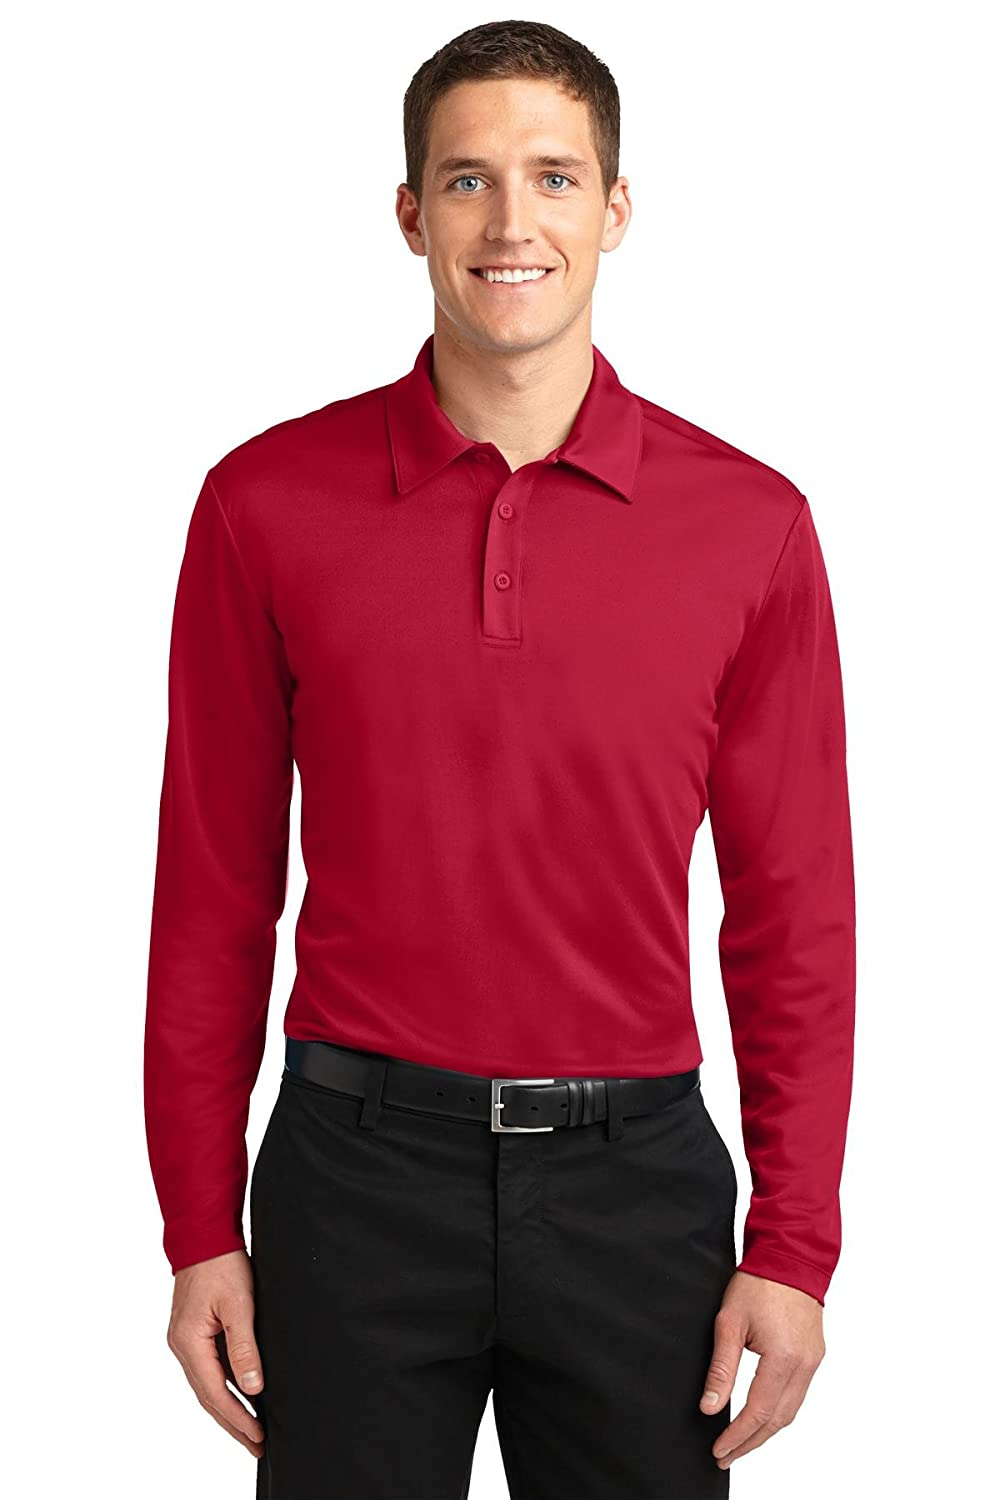 75e0ccec0dea Port Authority Men's Silk Touch Performance Long Sleeve Polo at Amazon Men's  Clothing store: